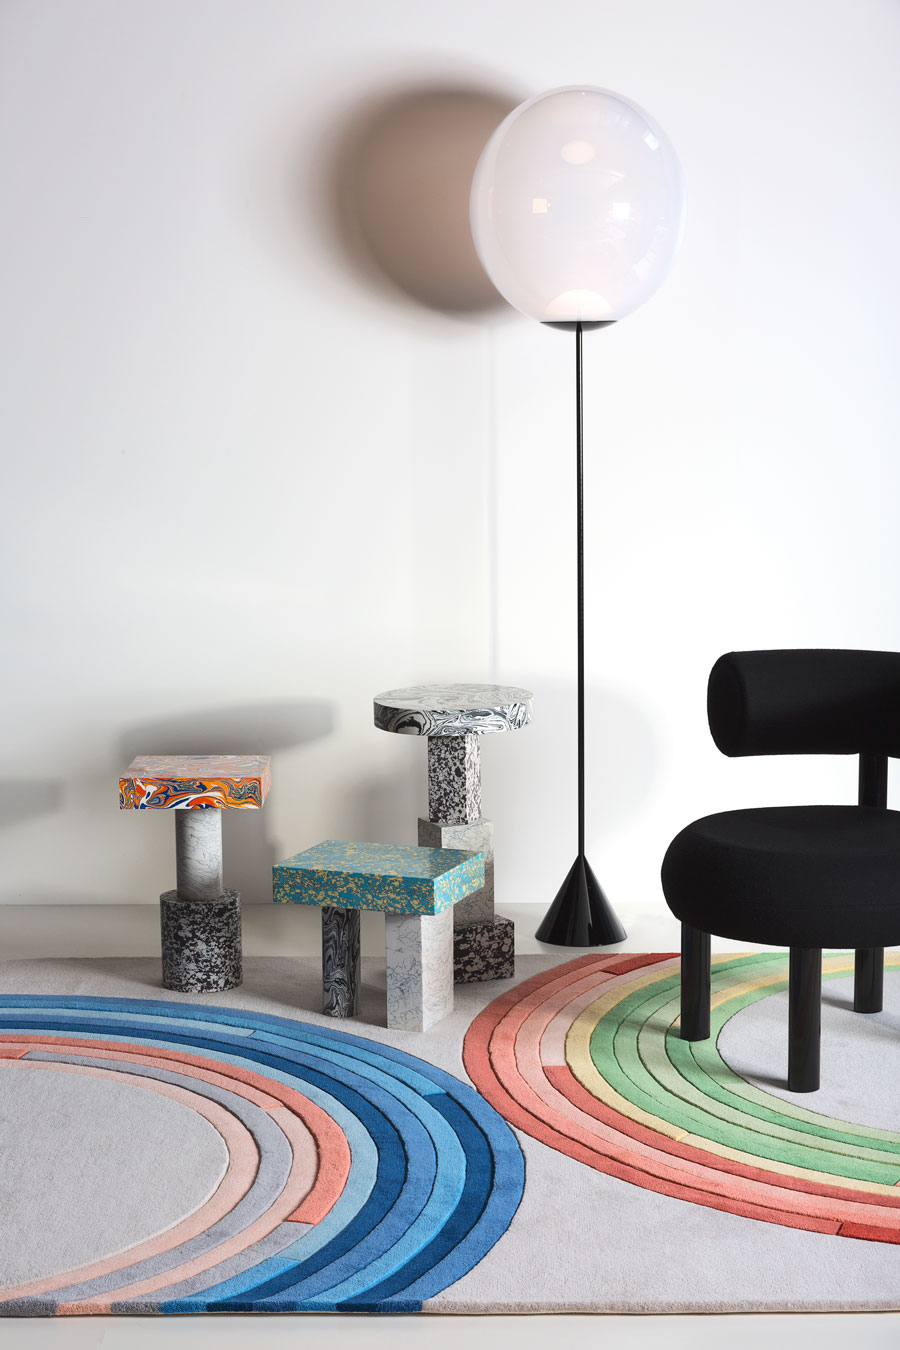 location shot of magnetic rug by gavin harris